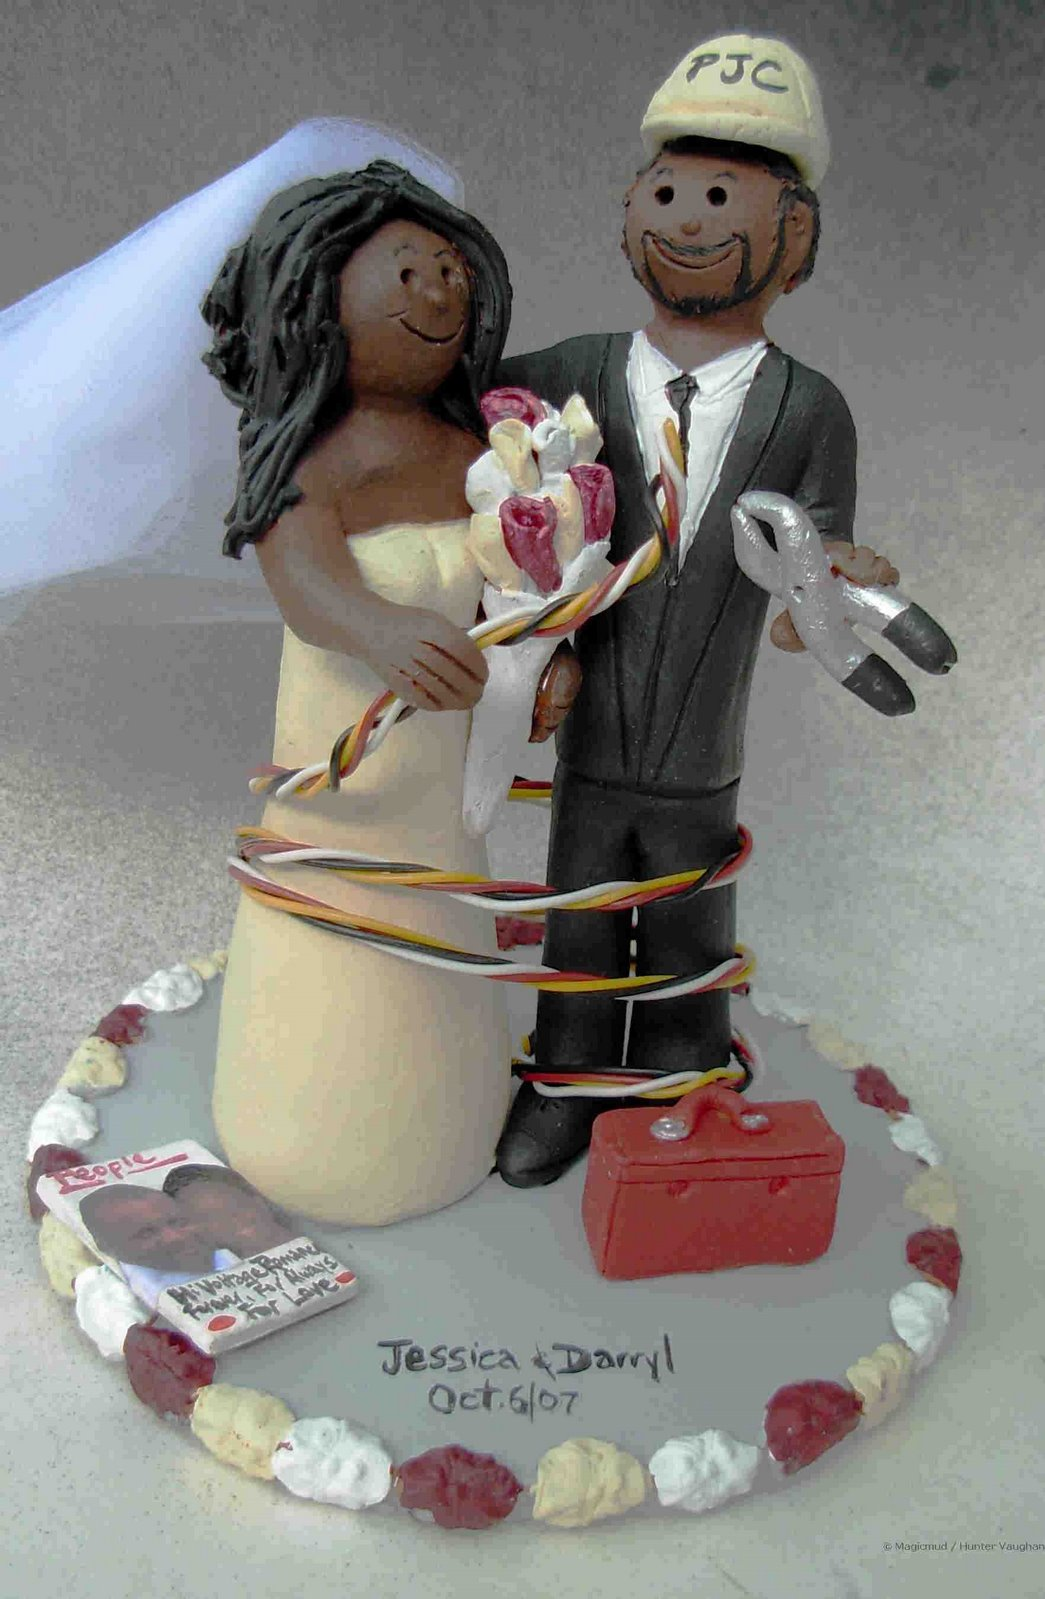 Electrician Cake Decorations http://solarforamerica.org/publications/electrician-cake-ideas